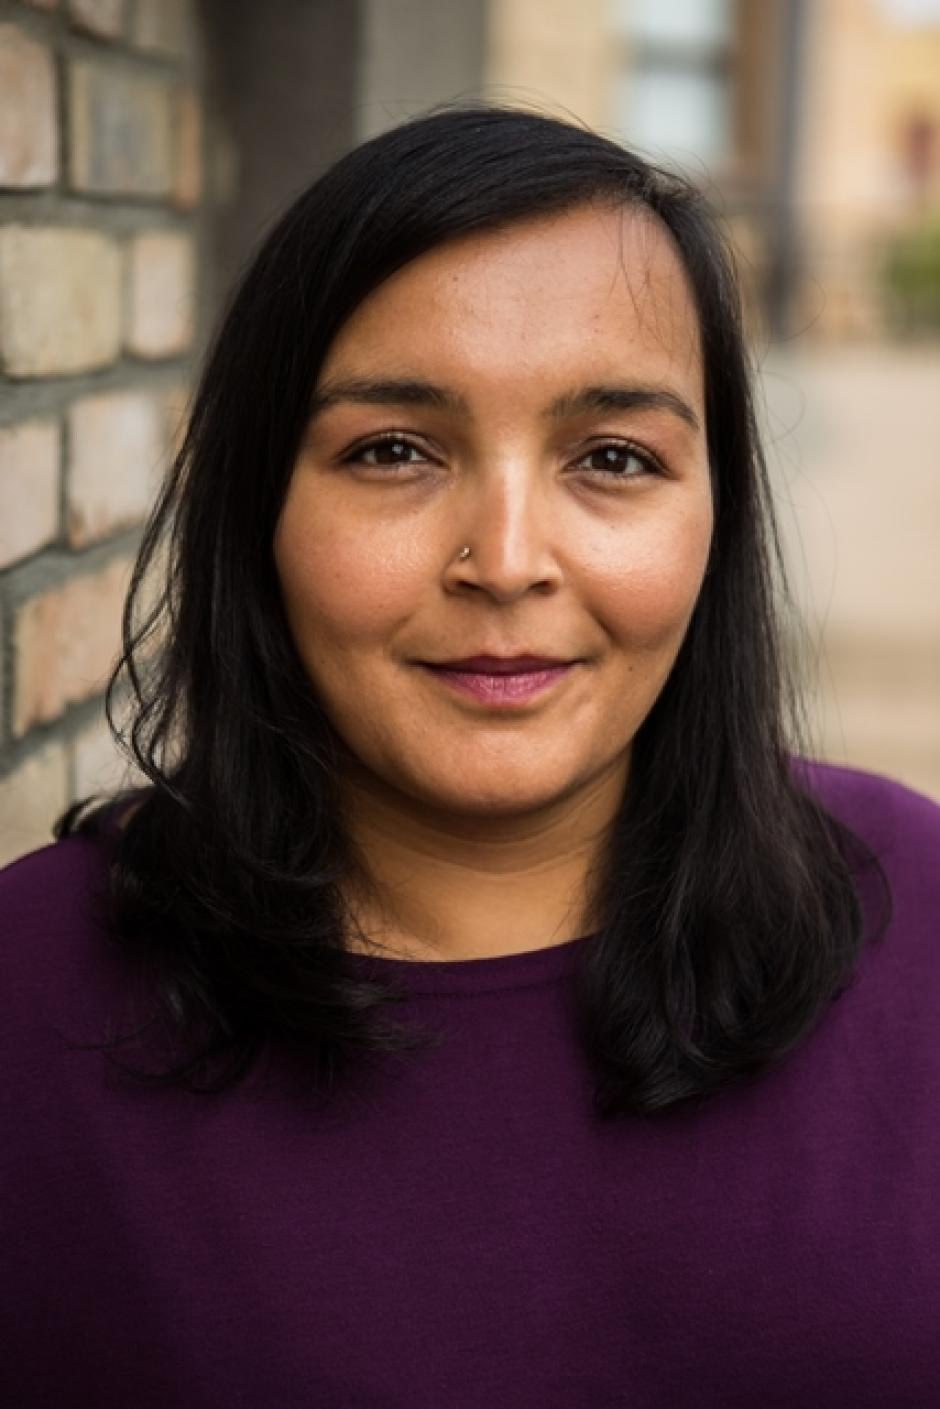 A headhsot of Sharanpal Ruprai wearing a purple sweater and standing in front of a brick wall.